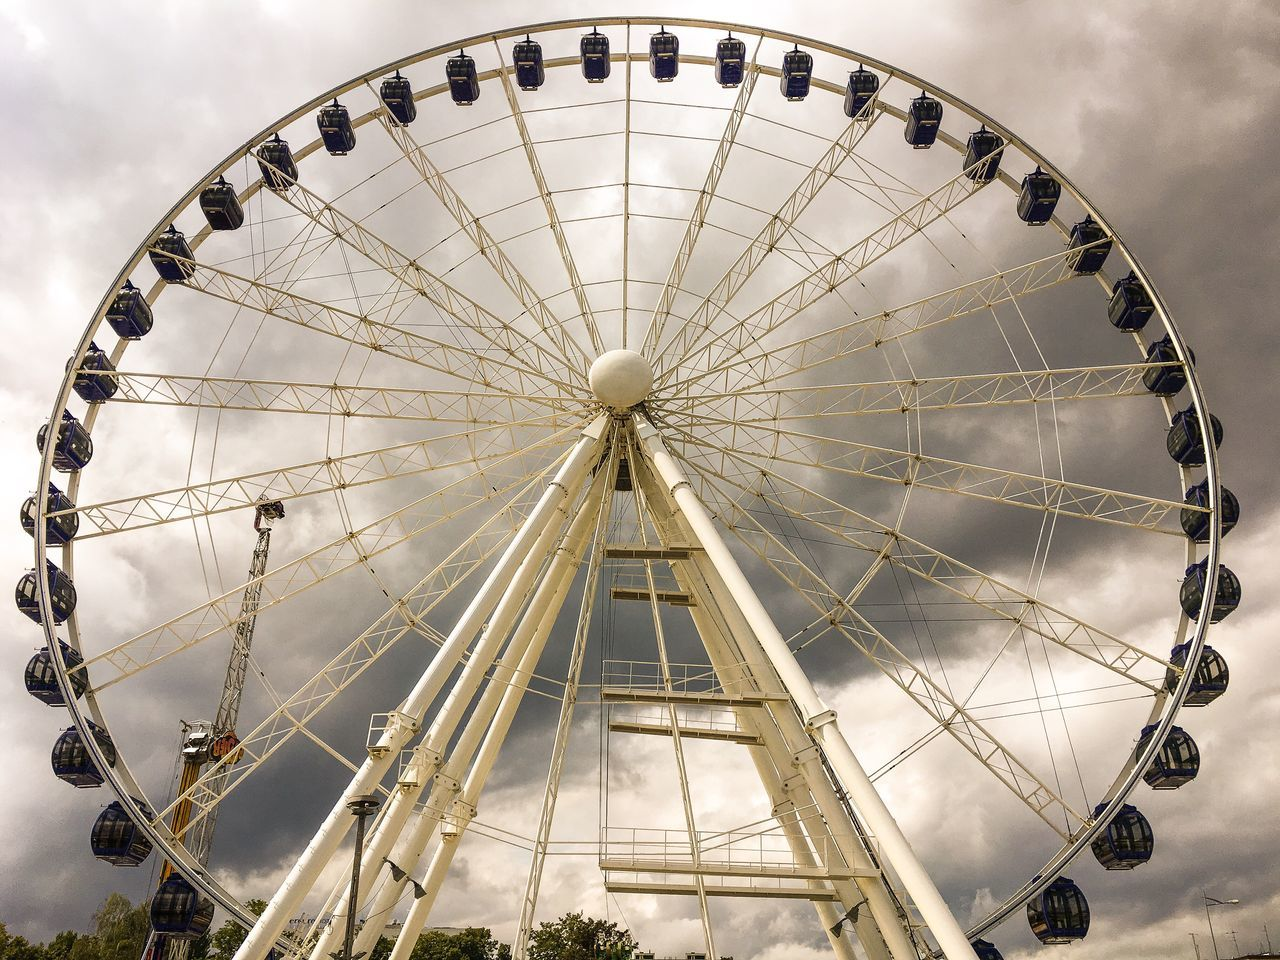 amusement park, arts culture and entertainment, ferris wheel, amusement park ride, low angle view, big wheel, no people, sky, day, outdoors, carousel, close-up